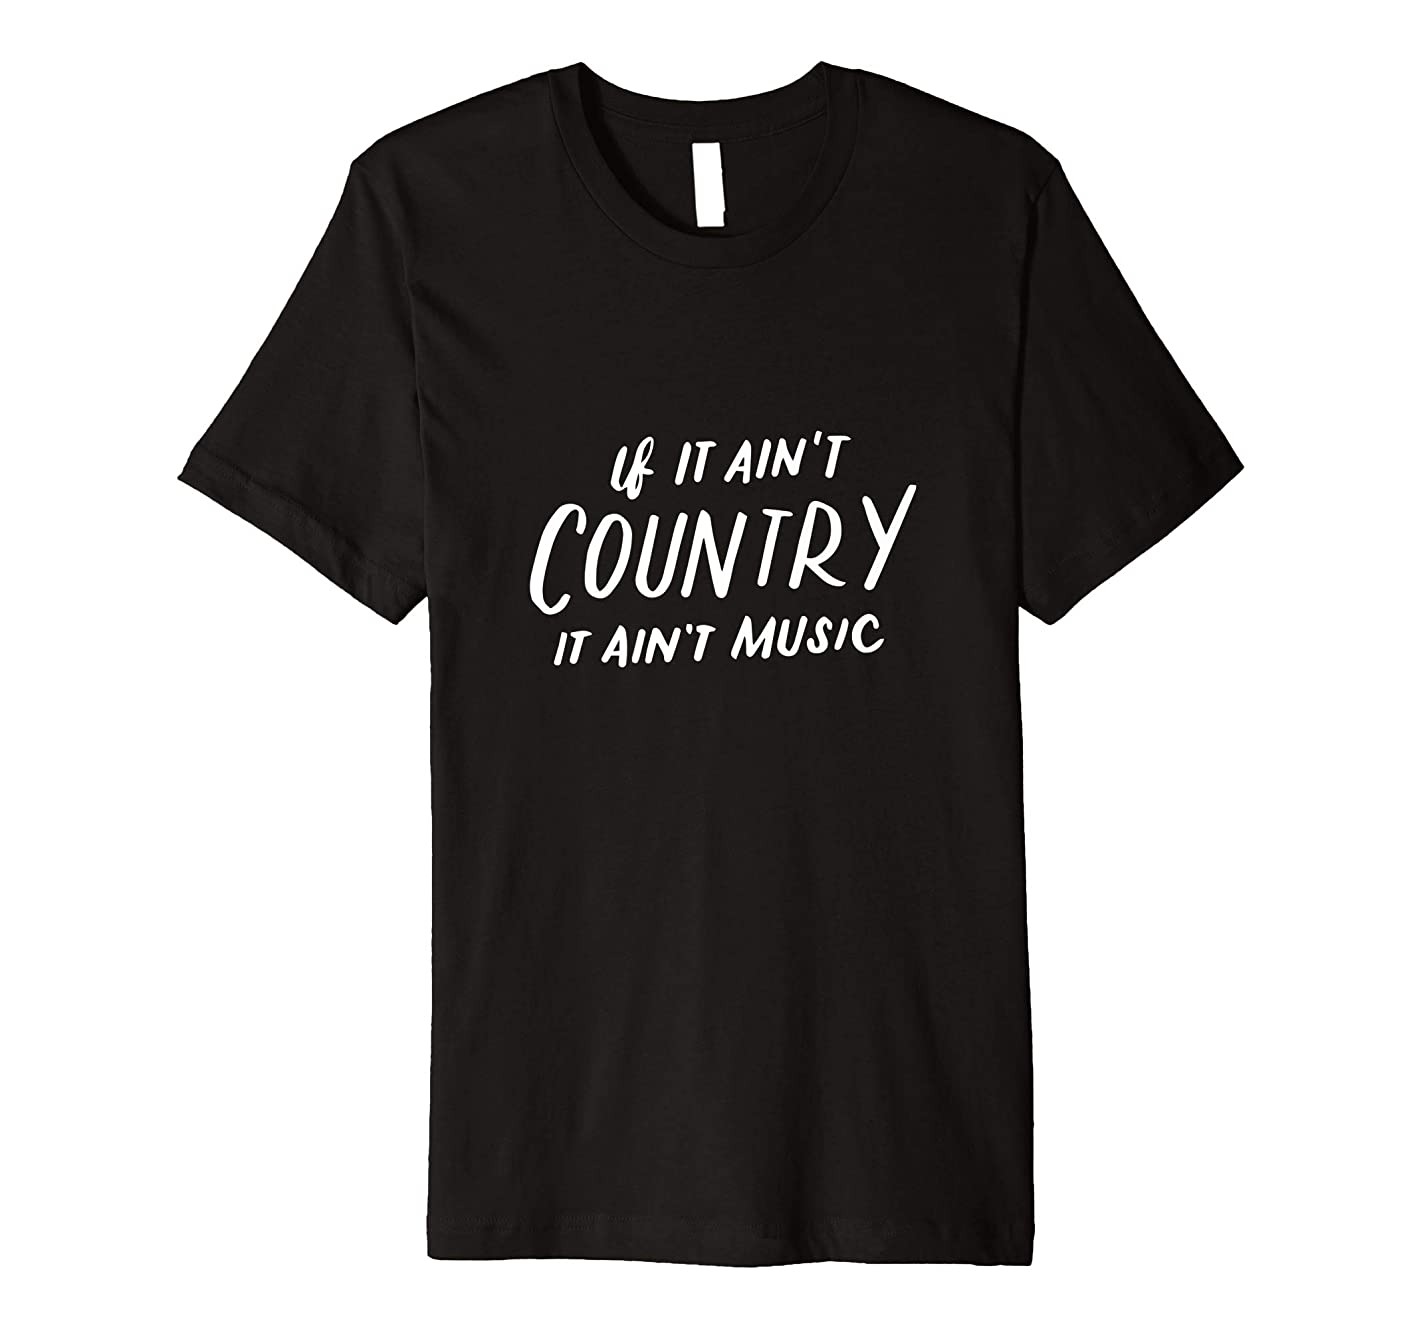 If It Ain't Country It Ain't Music, Country Music Lover Gift Premium T-Shirt